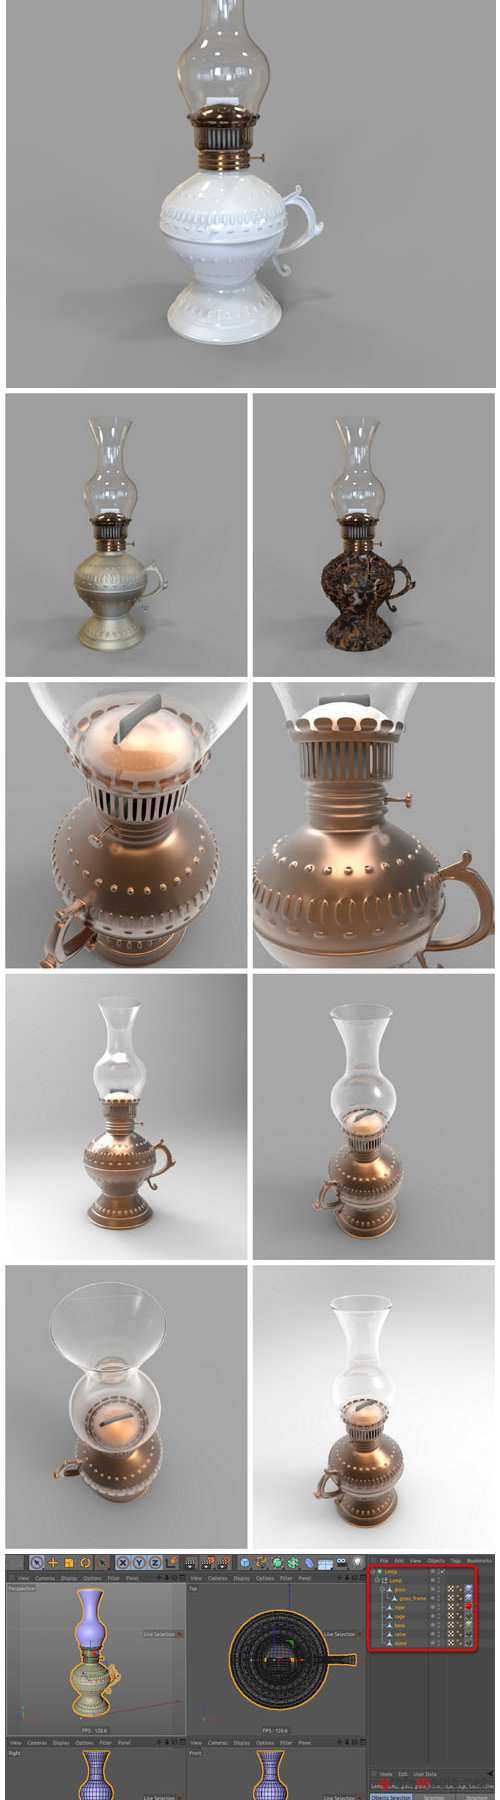 3dOcean - Gas - Oil Lamp